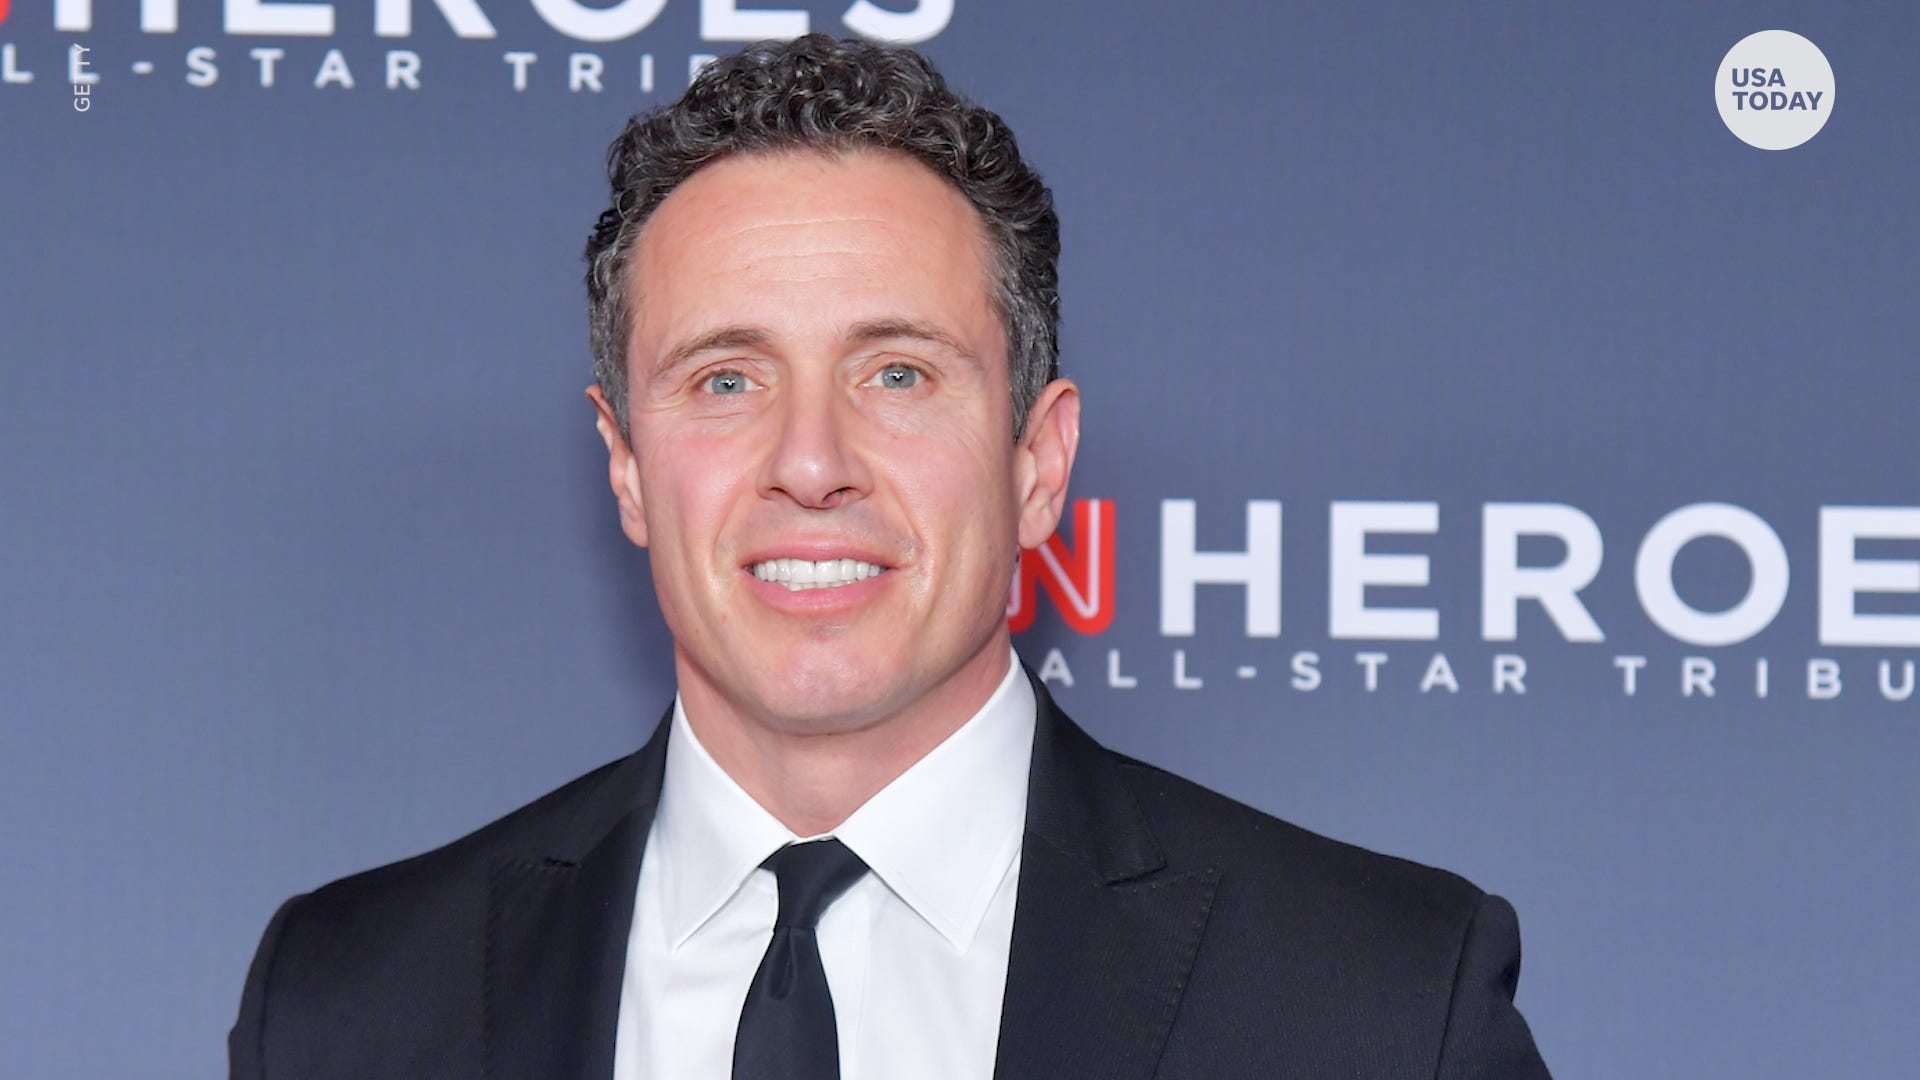 Chris Cuomo s calls with brother Gov. Andrew Cuomo s staff on sex harassment claims  inappropriate,  CNN says